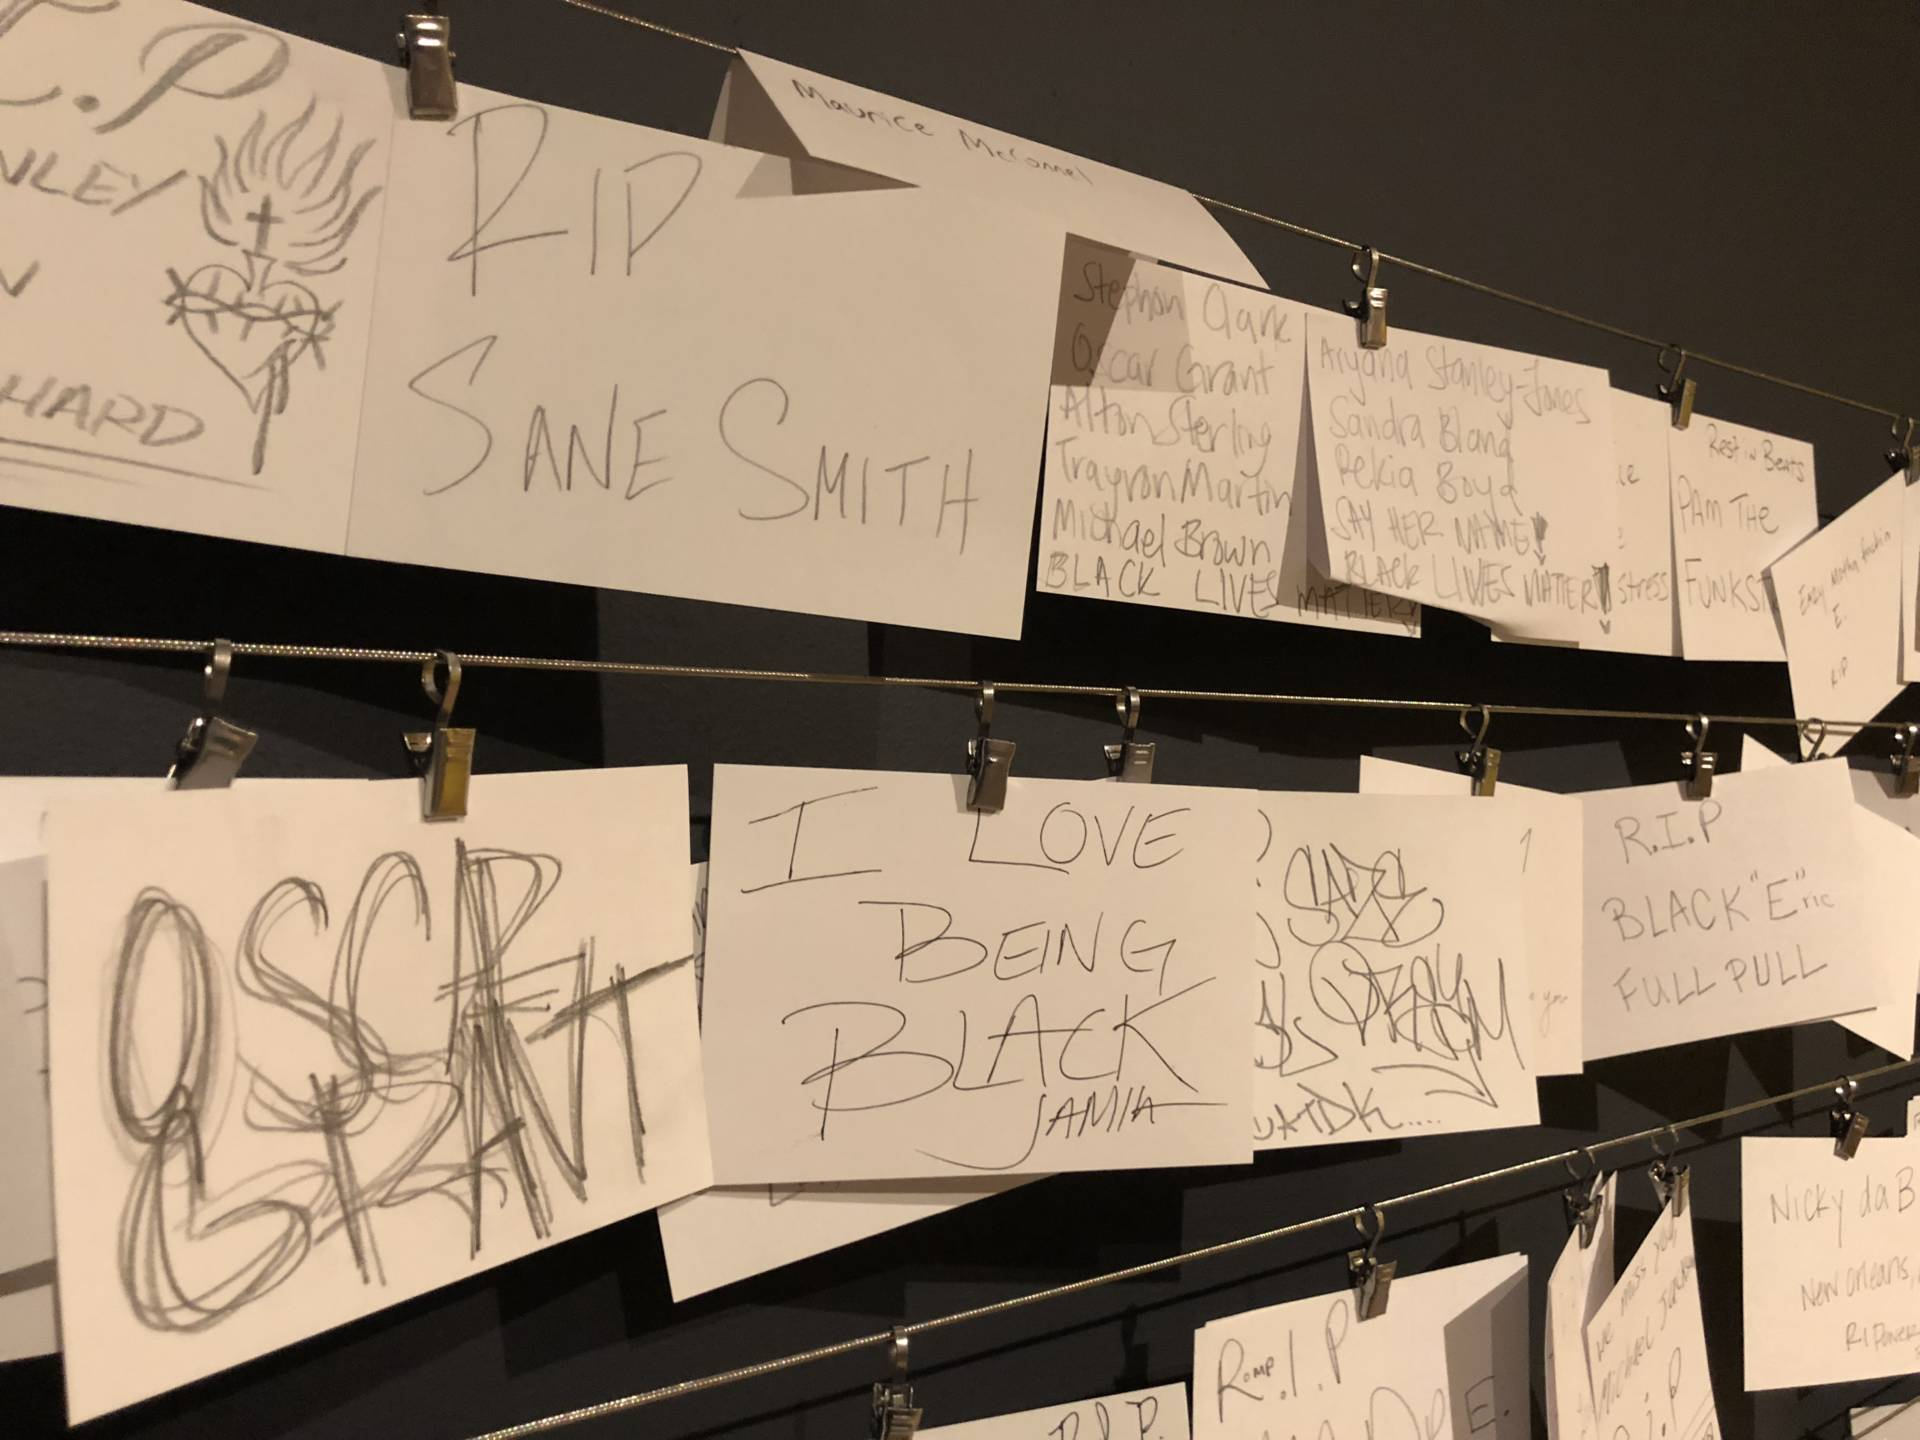 People can write their own memorials and hang them on the wall next to the street memorial.